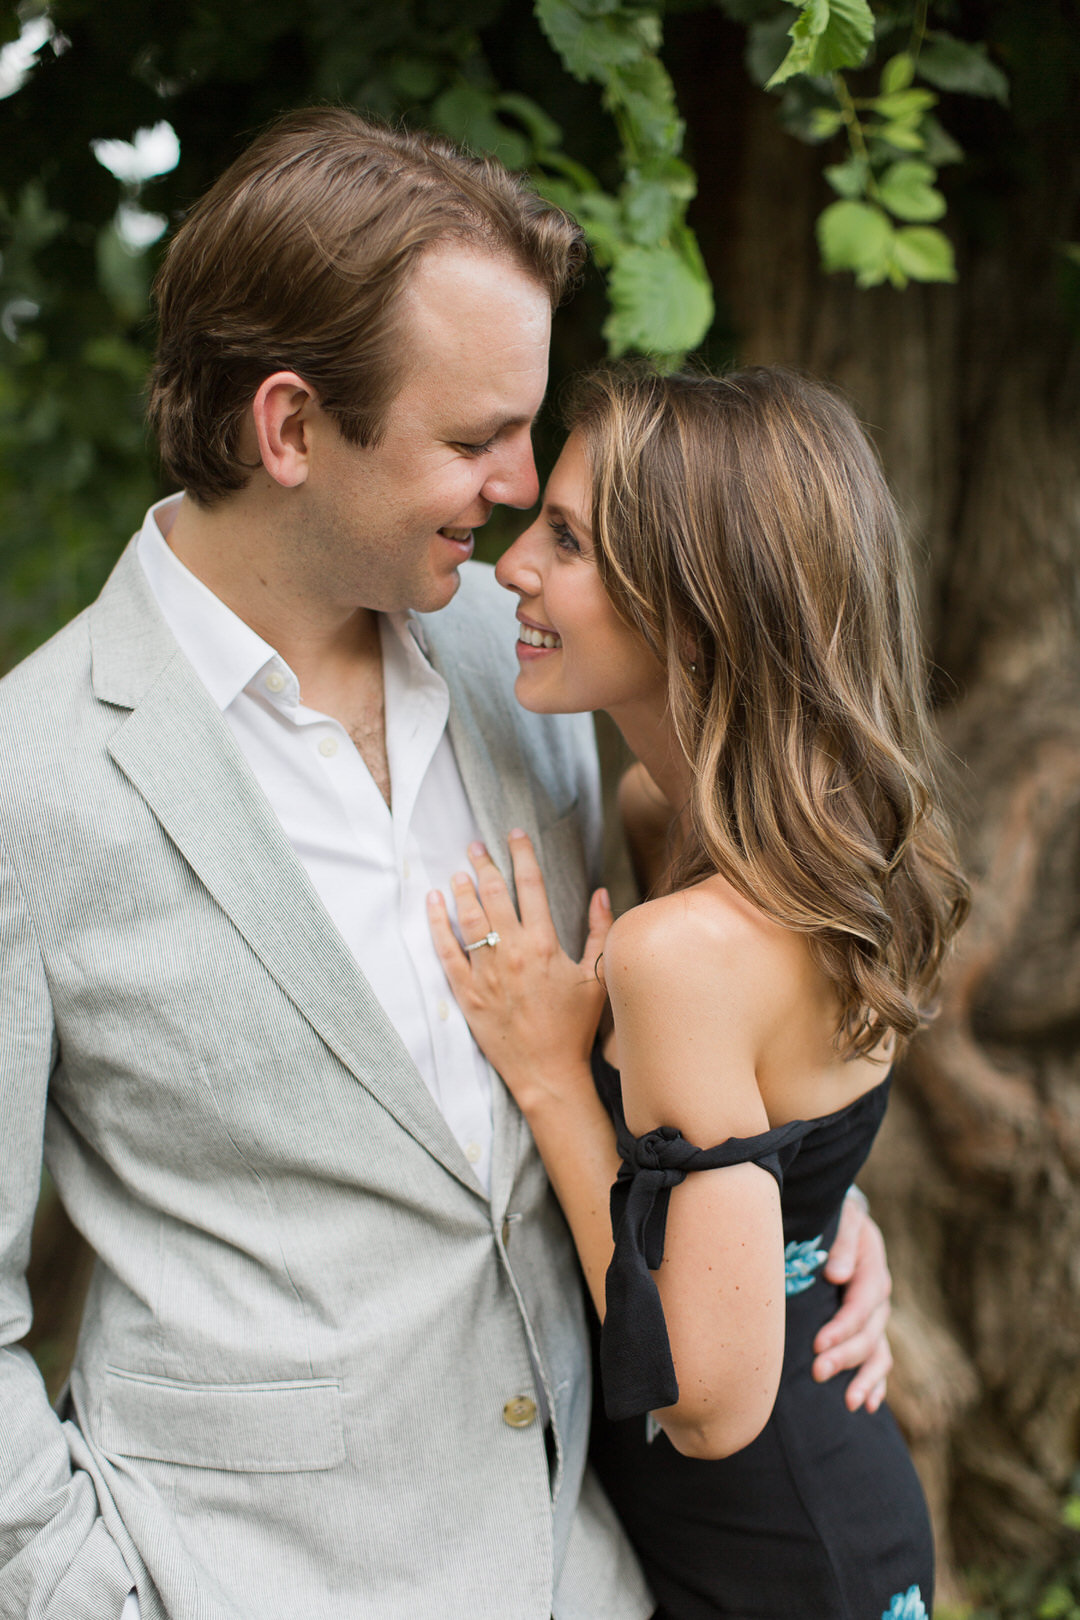 Melissa Kruse Photography - Meghan & Pete Engagement Photos-159.jpg